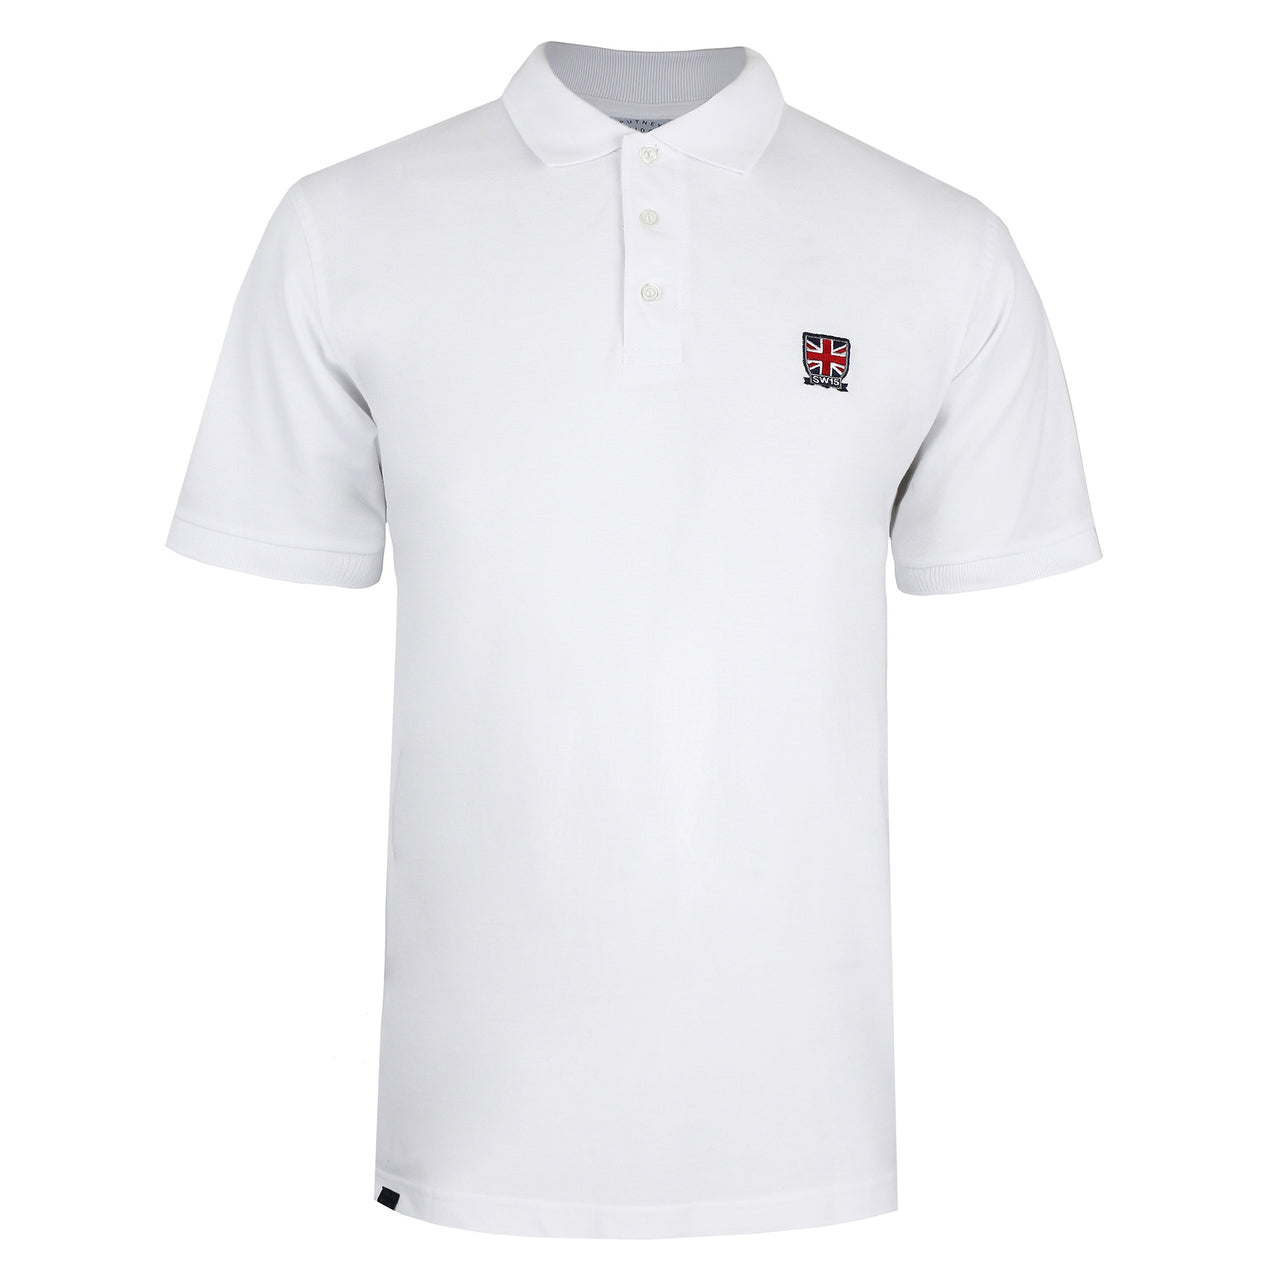 Emblem Polo Shirt - White